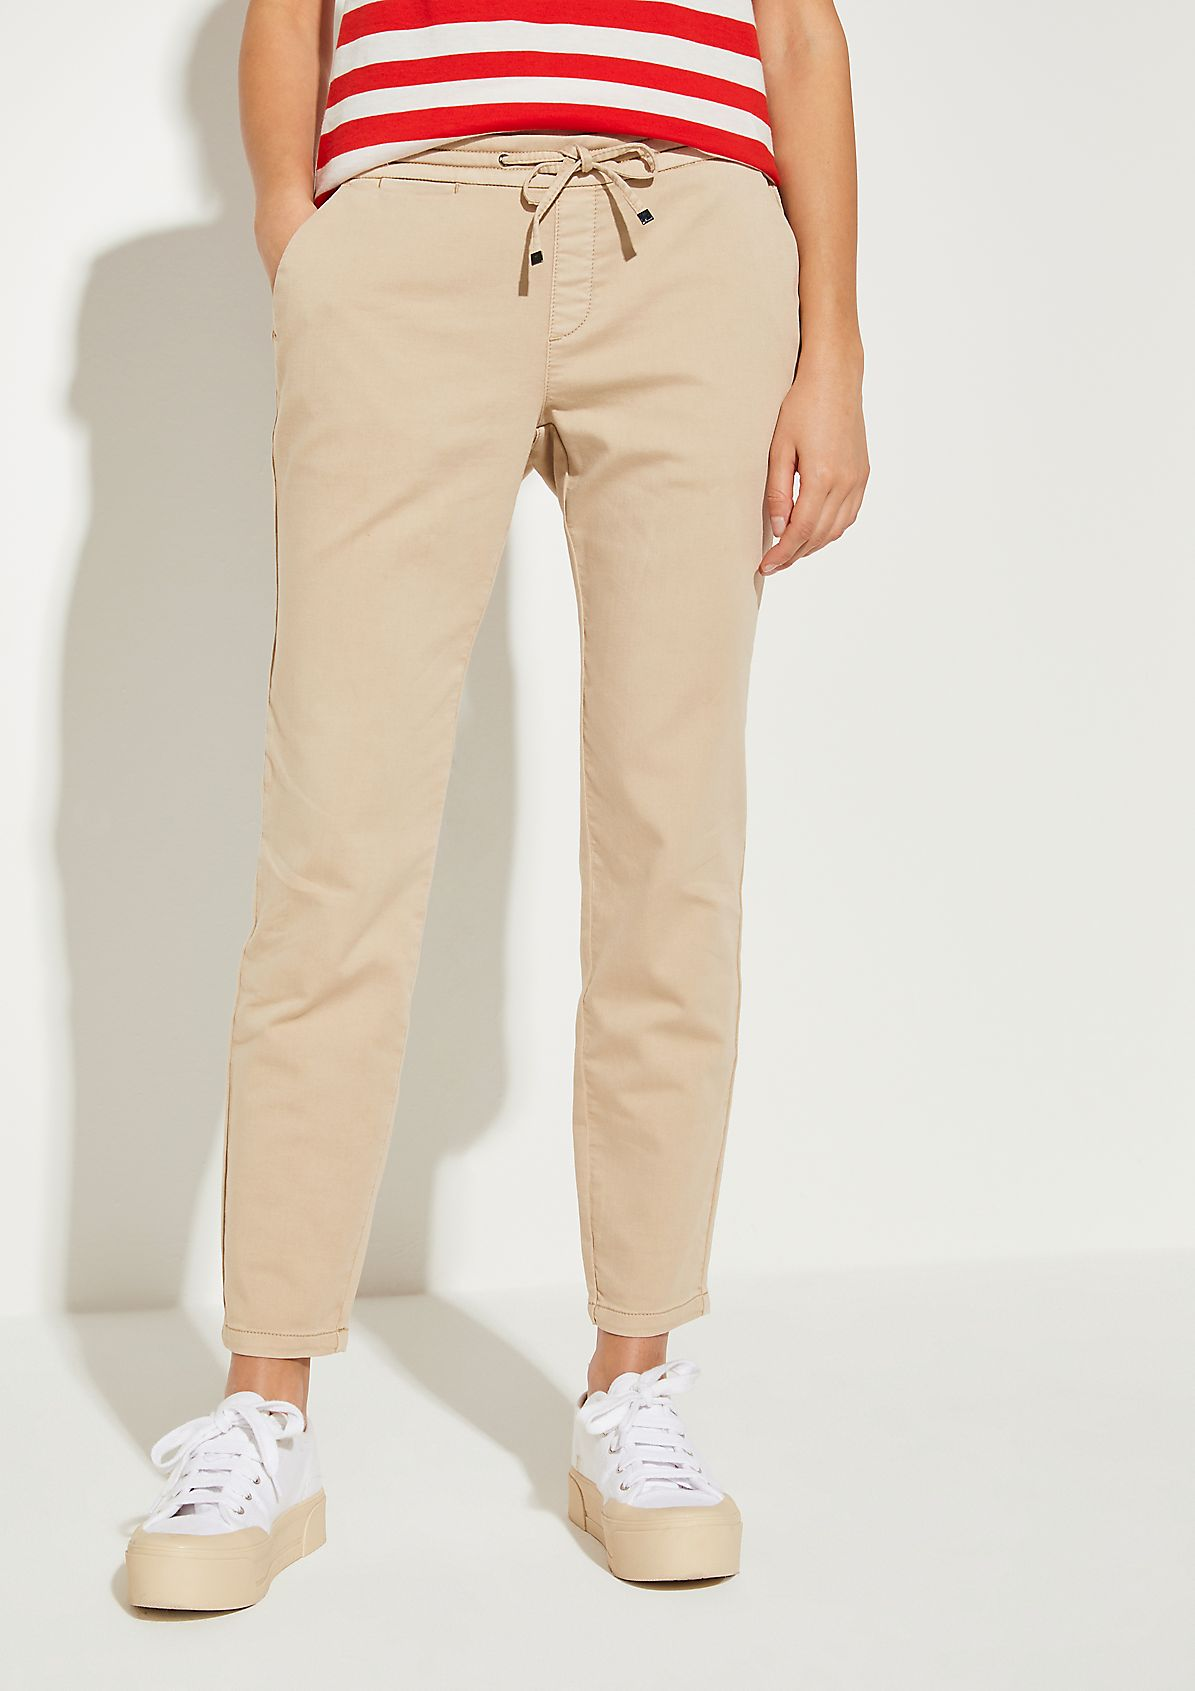 Relaxed Fit: Hose im Athleisure-Stil